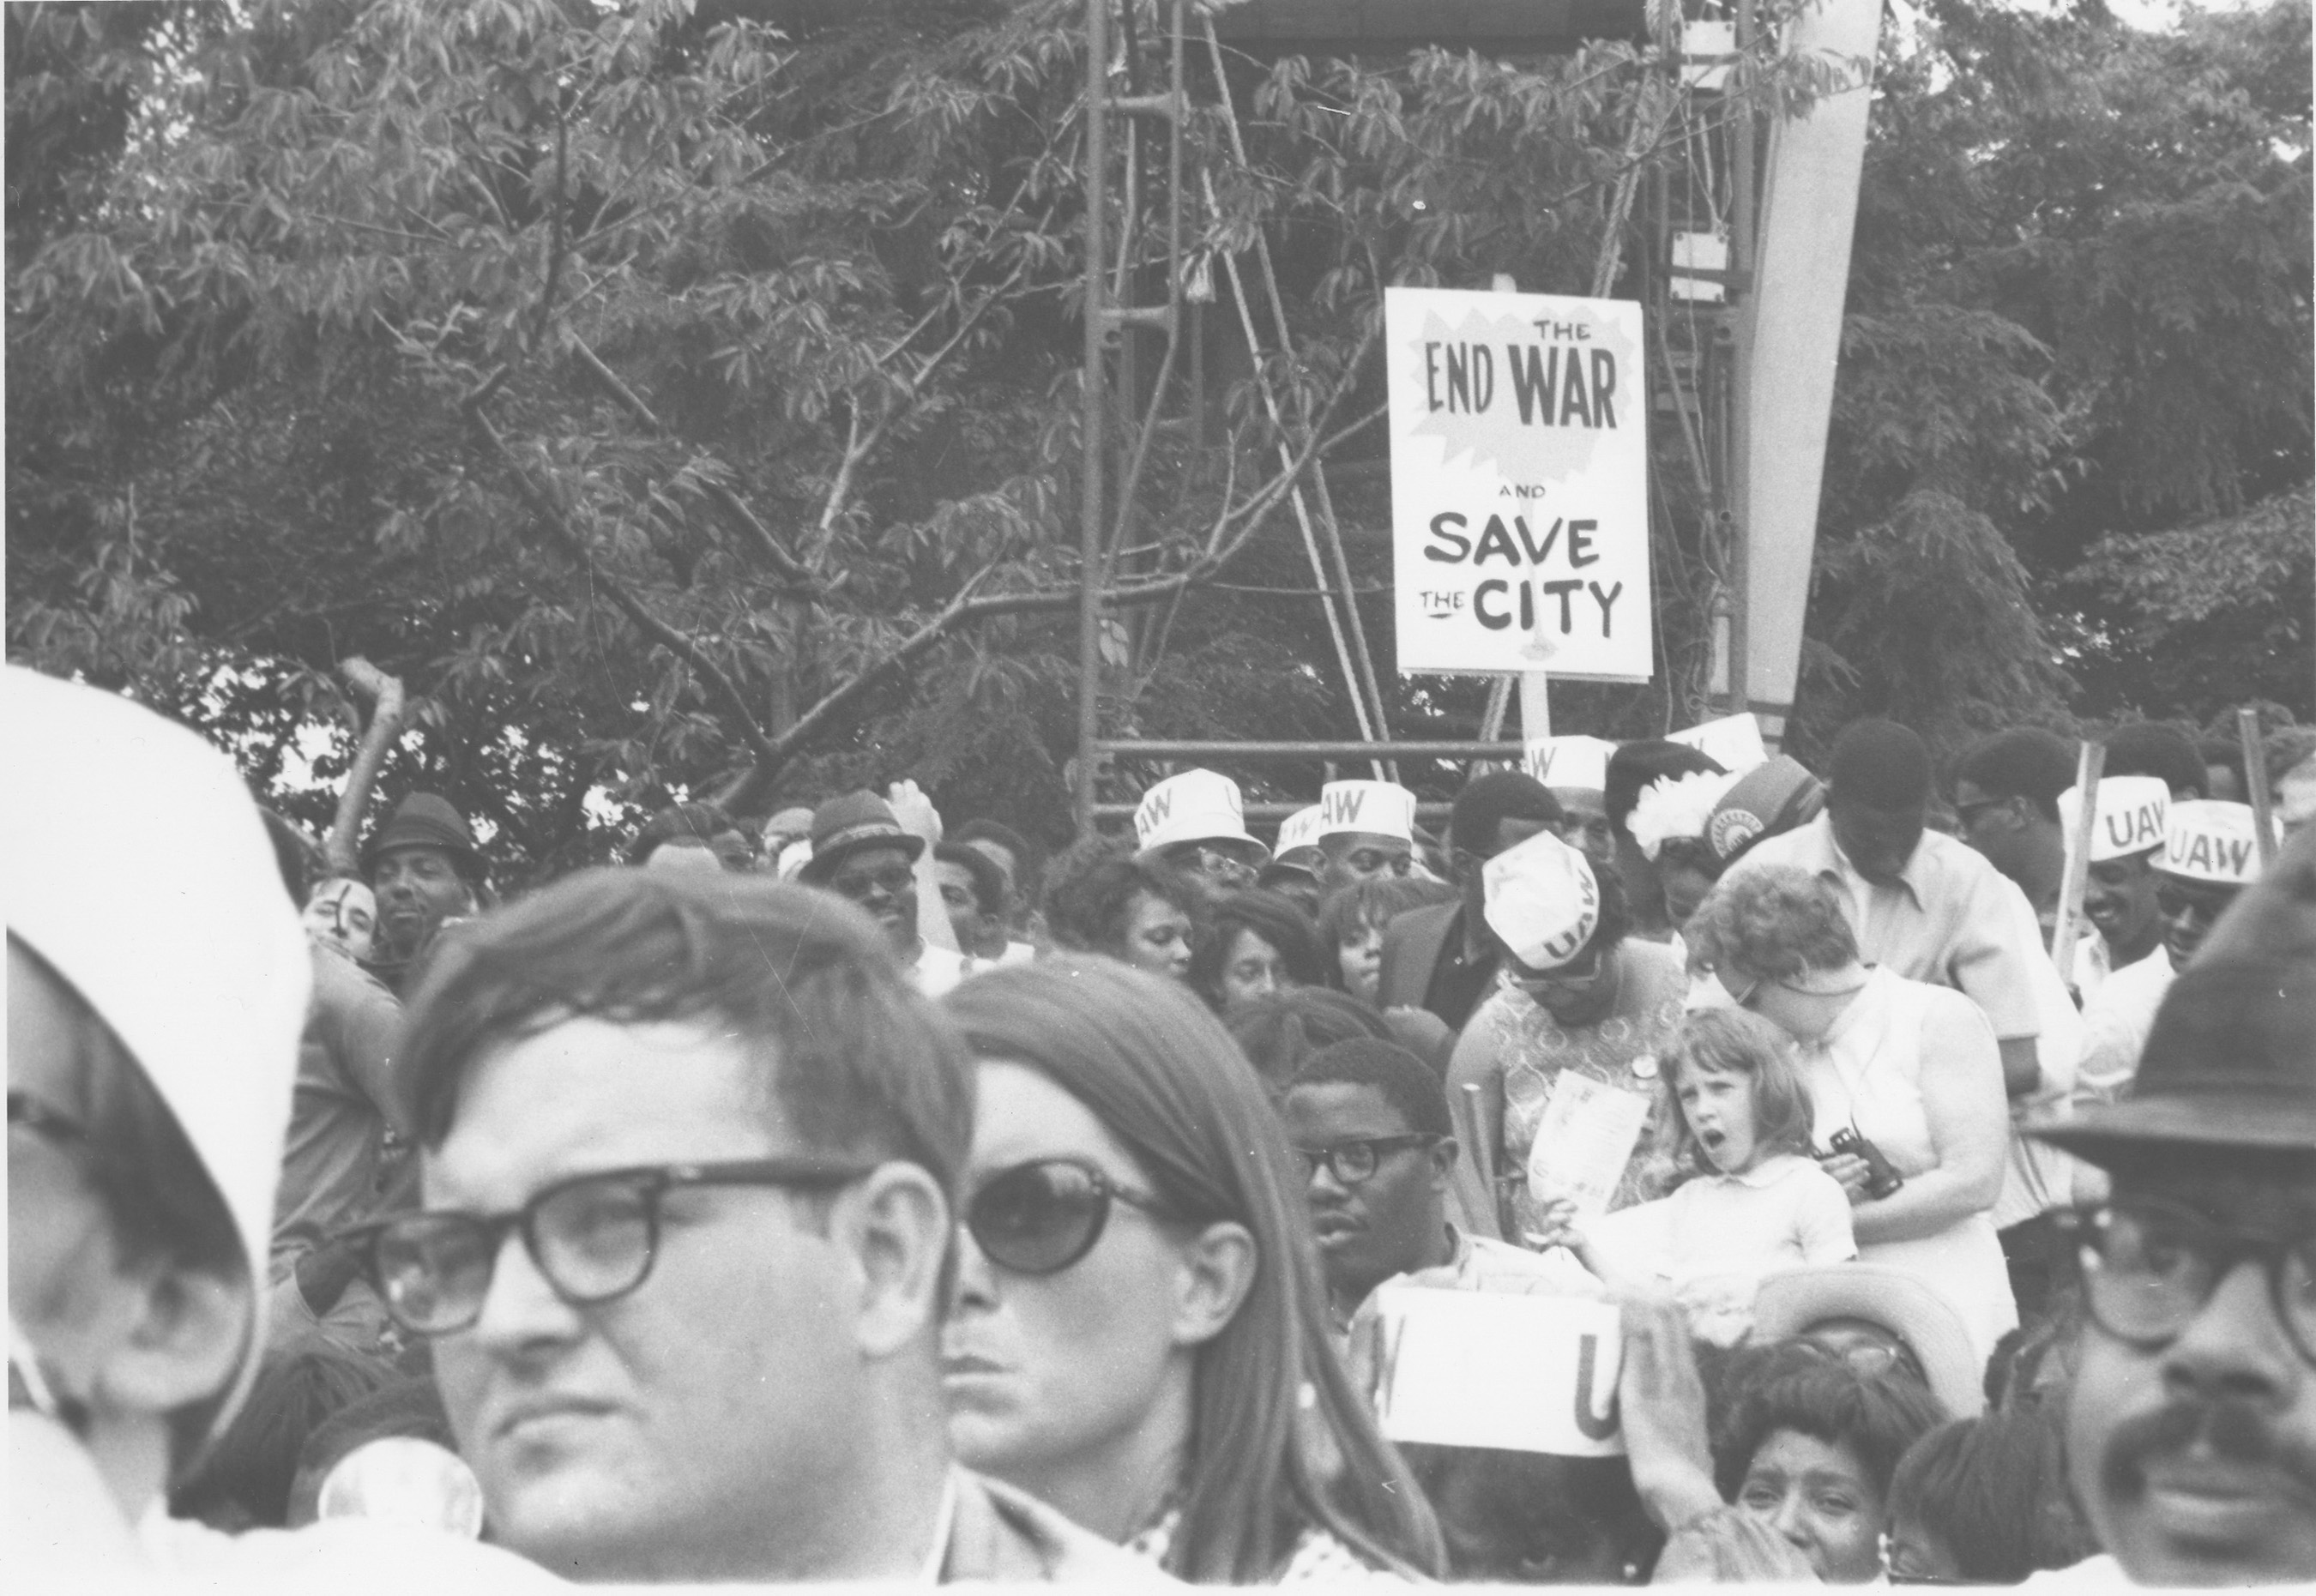 Smithsonian's Anacostia Community Museum Exhibition Highlights Impact of 1963-1975 Protest Years on Washington, D.C.